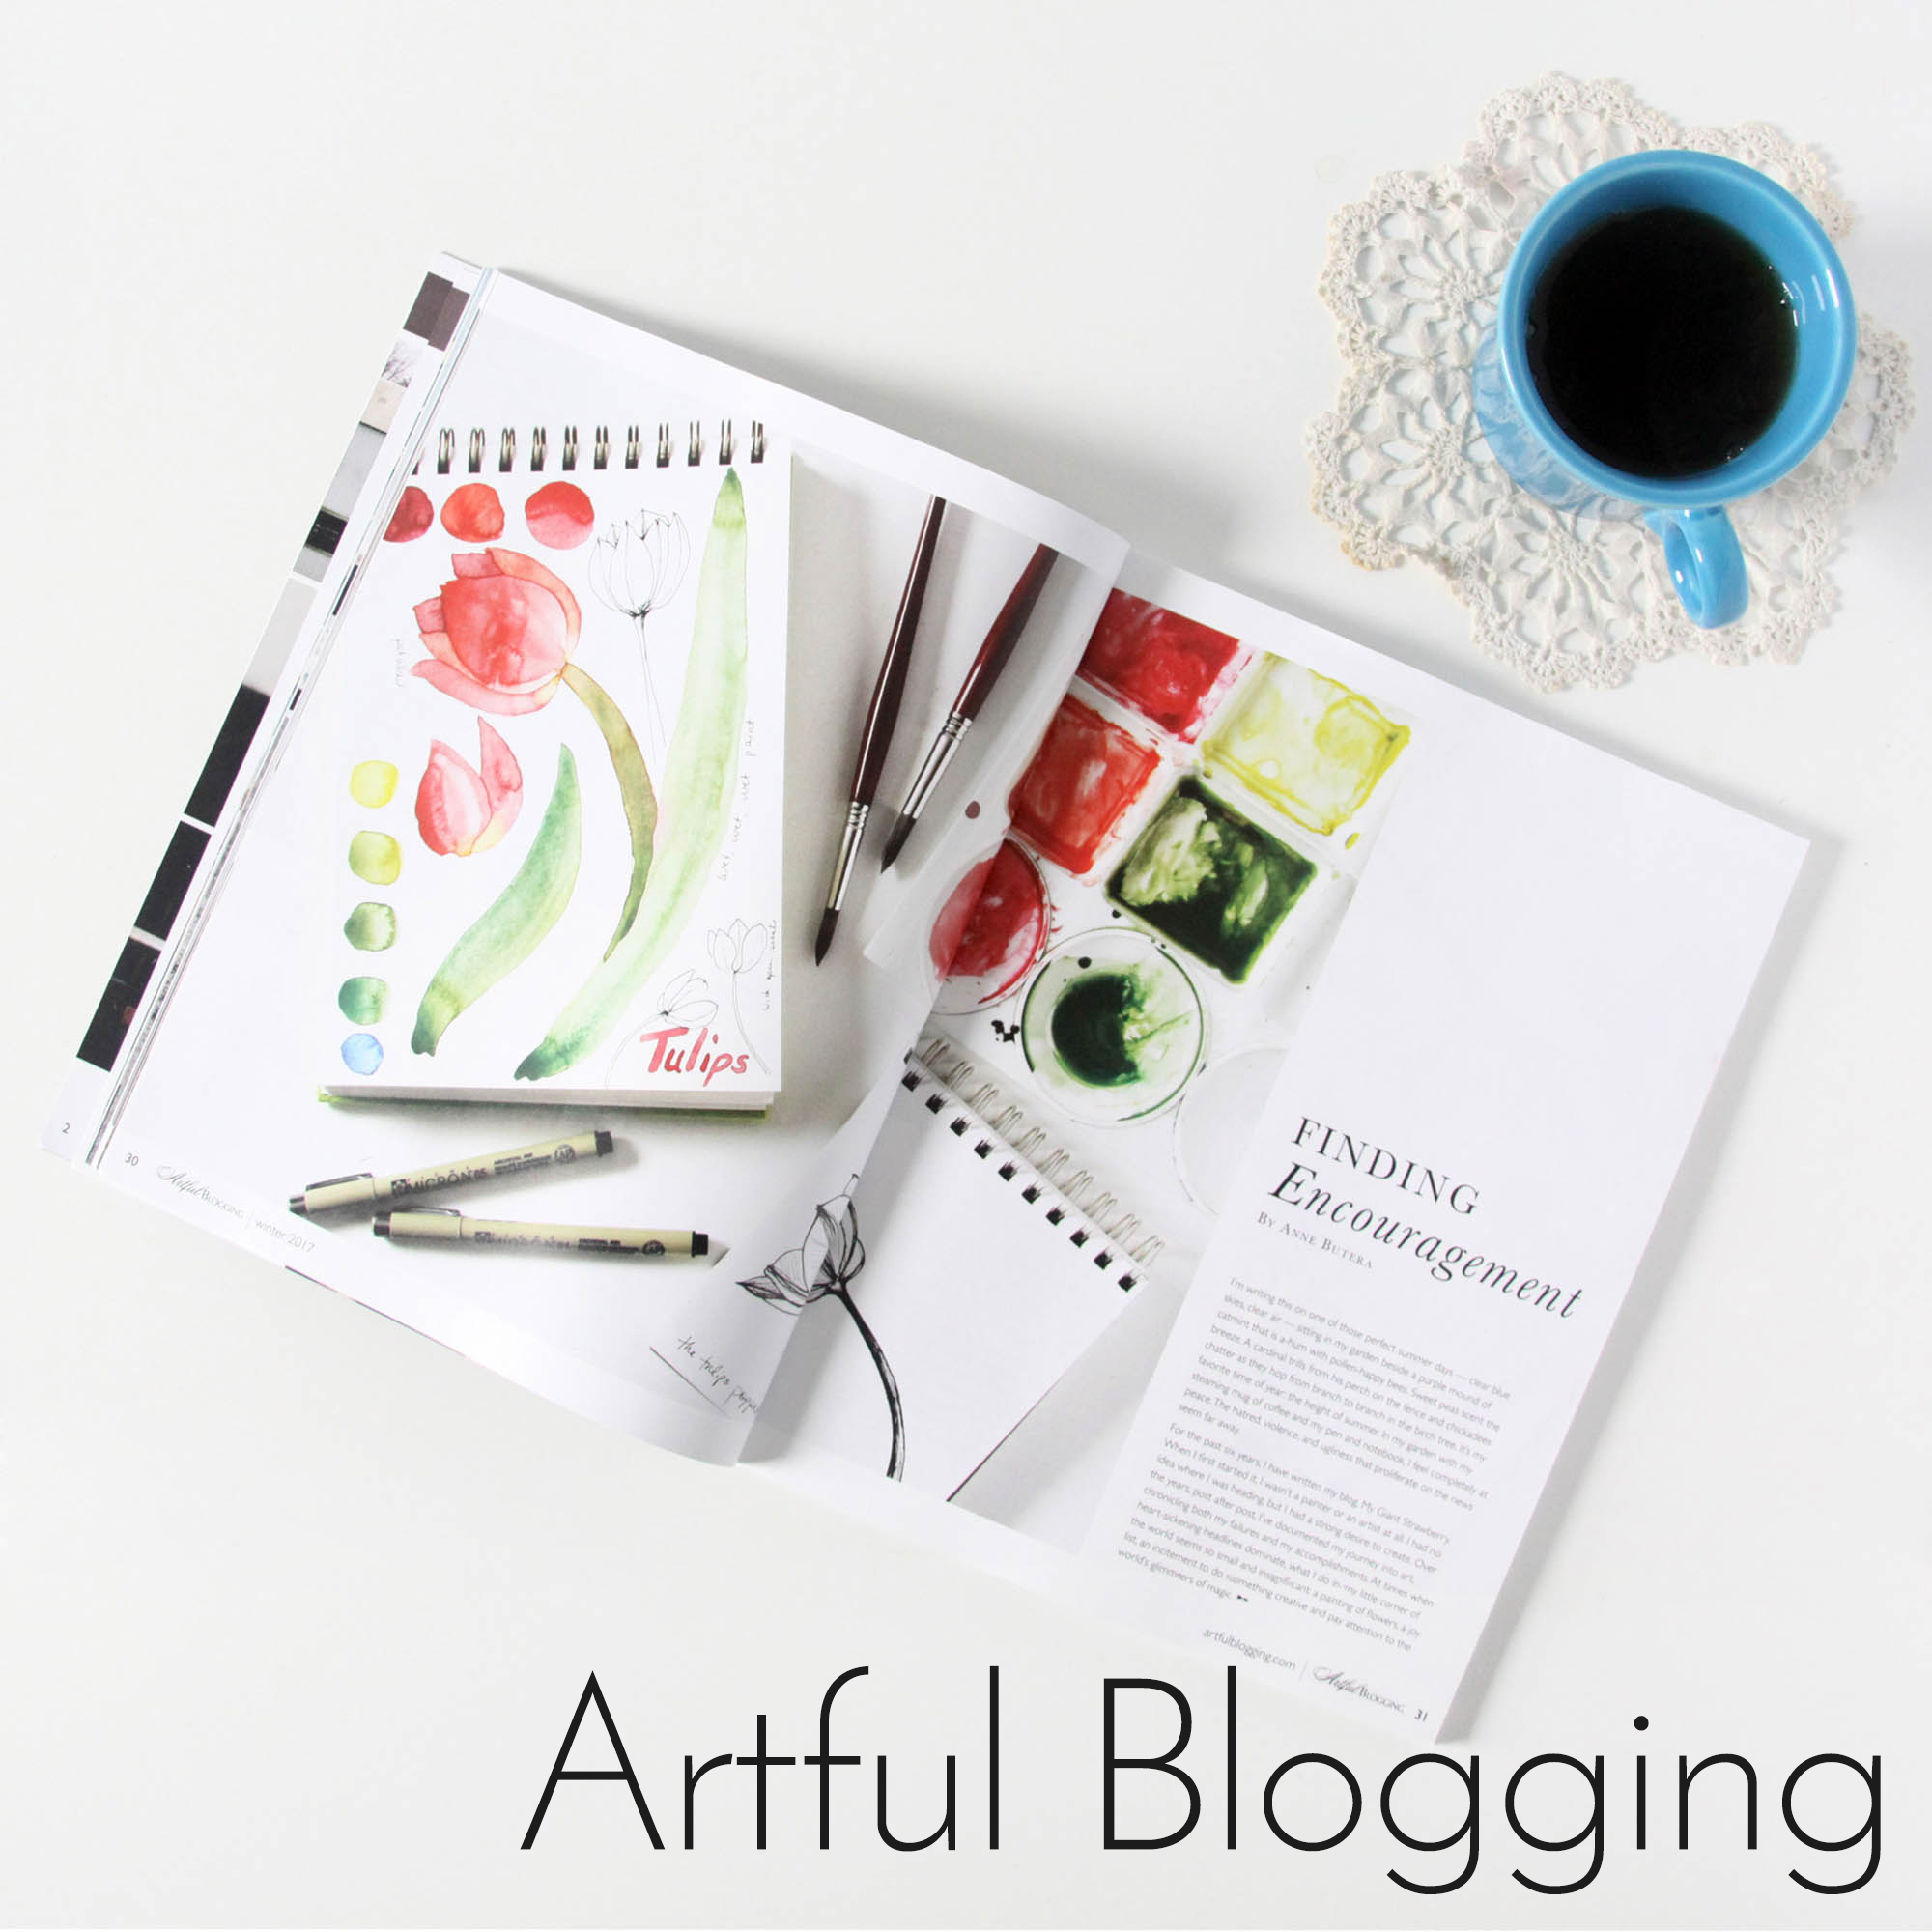 Anne Butera's Blog was featured in Artful Blogging Magazine